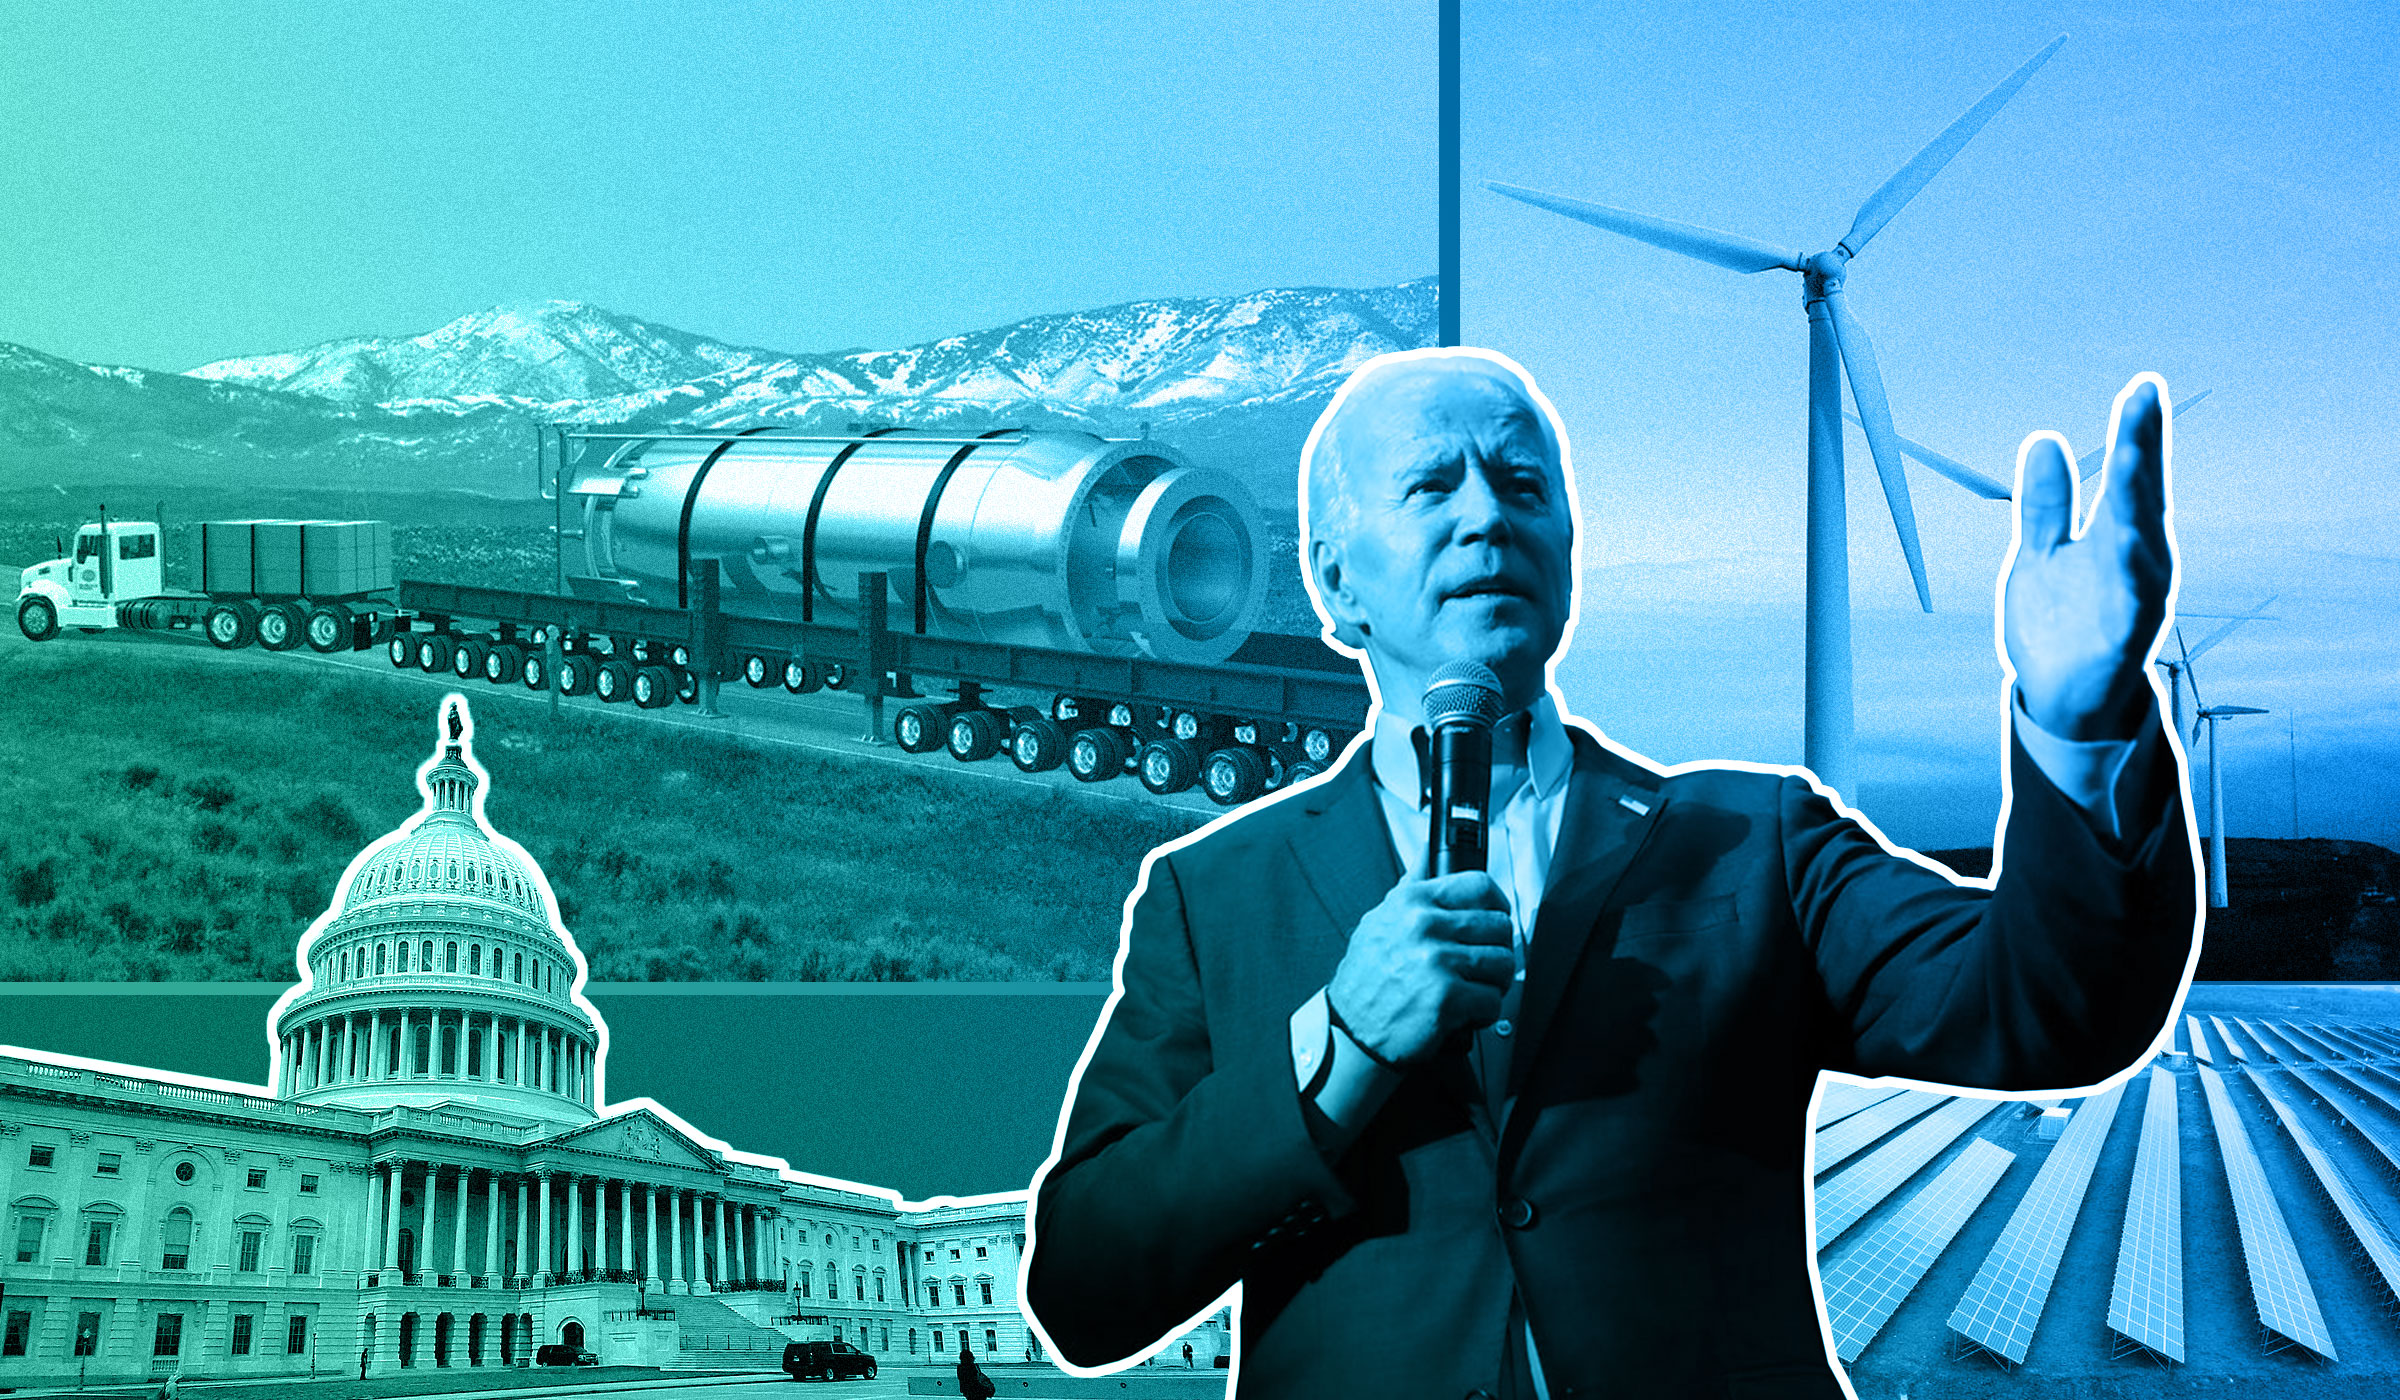 Collage of Joe Biden and the U.S. Capitol Building foregrounded against a solar farm, wind farm, and small modular reactor.